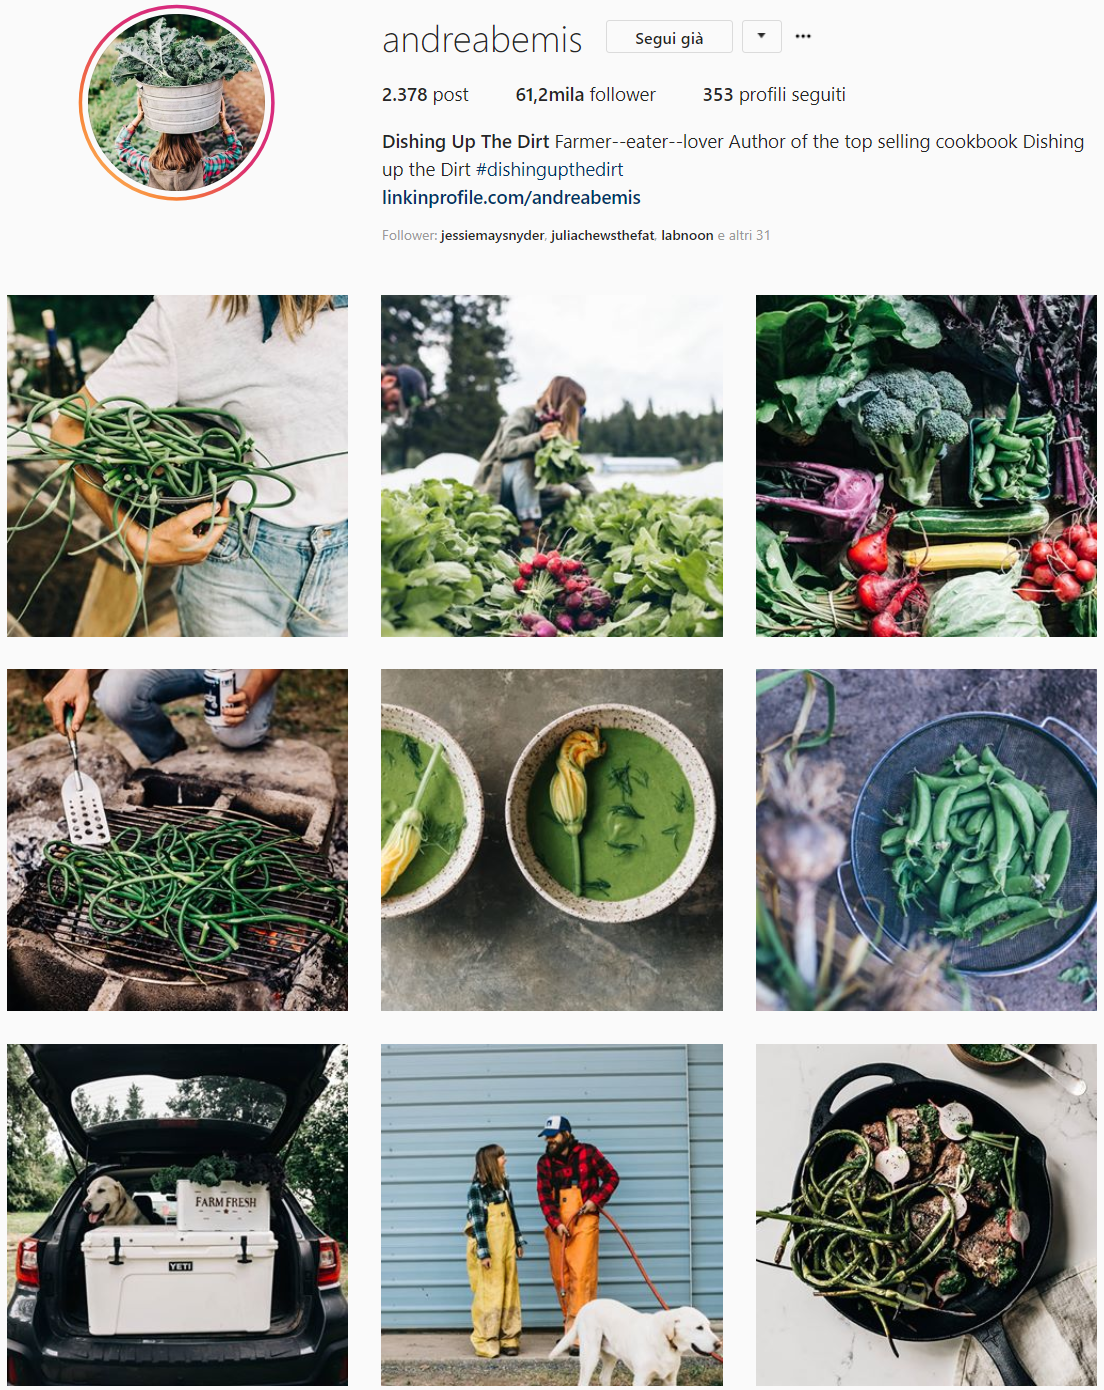 - Dishing Up the dirt - Andrea BemisBetween the endless hours of working the land, producing food, and cultivating a community of customers, Andrea and her husband Taylor somehow found a rhythm and good routine in their 6 acres farm in Oregon. Follow them!